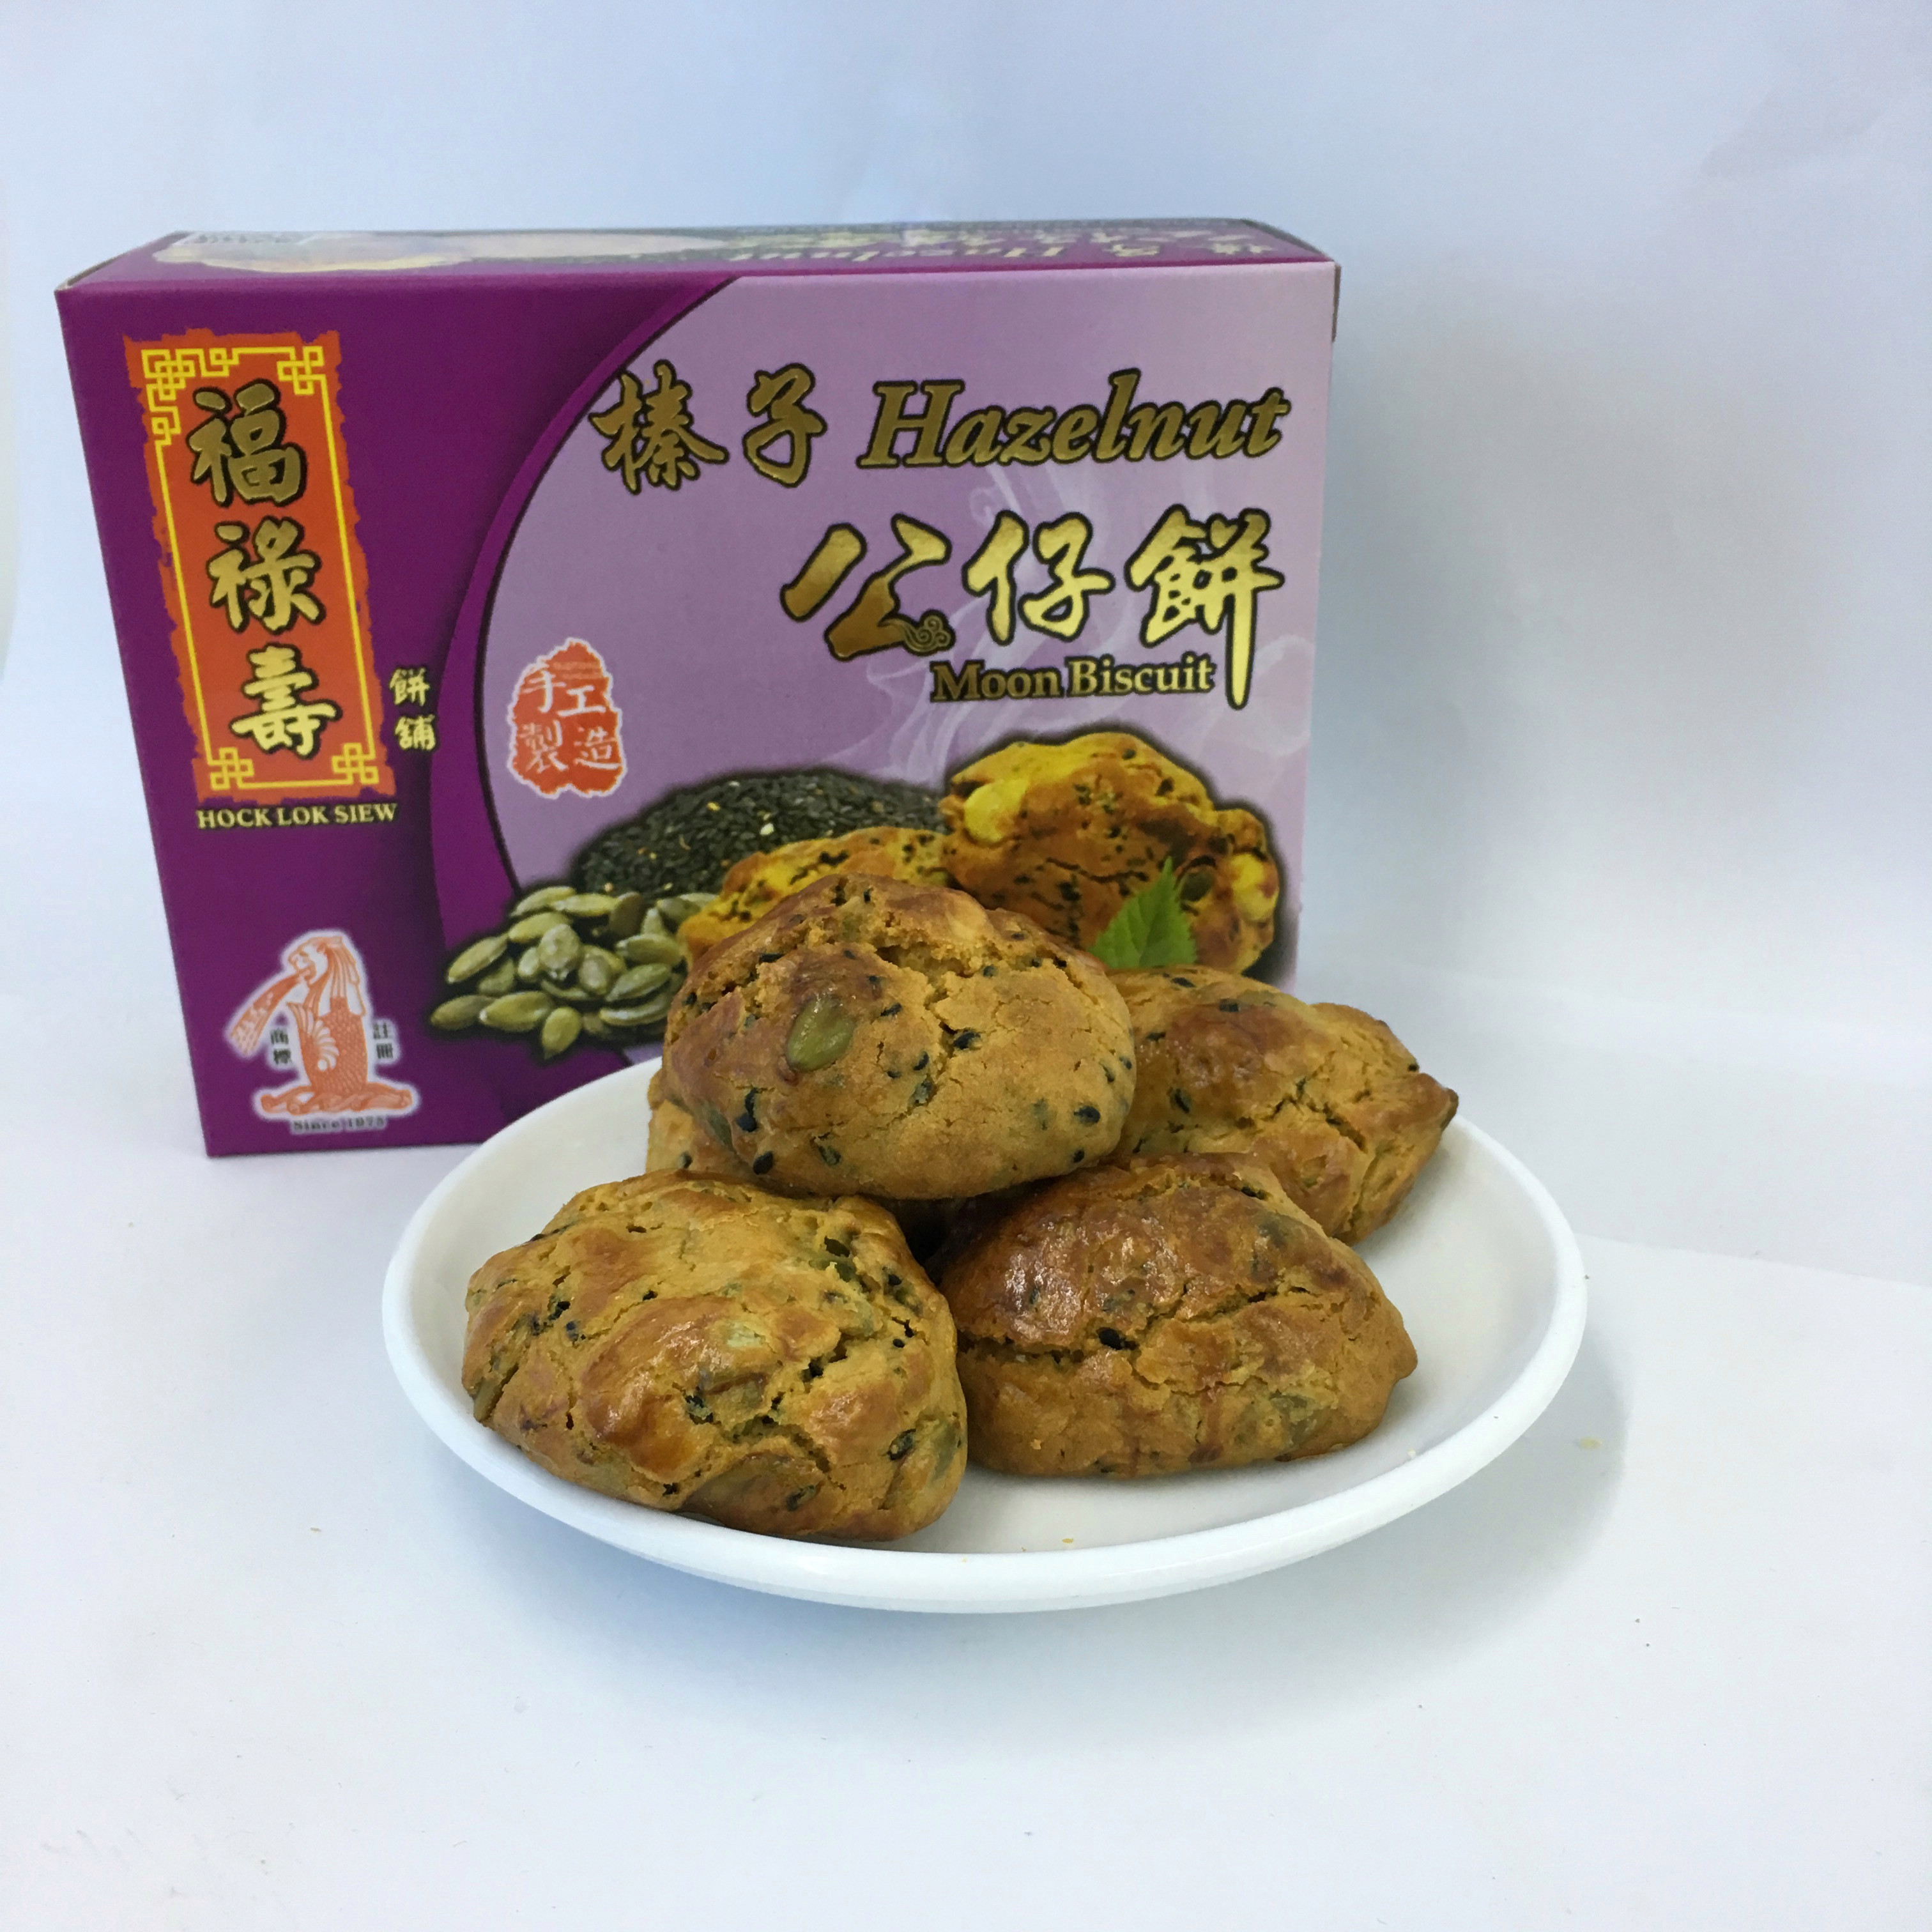 image of Hazelnut Moon Biscuit 榛子公仔饼